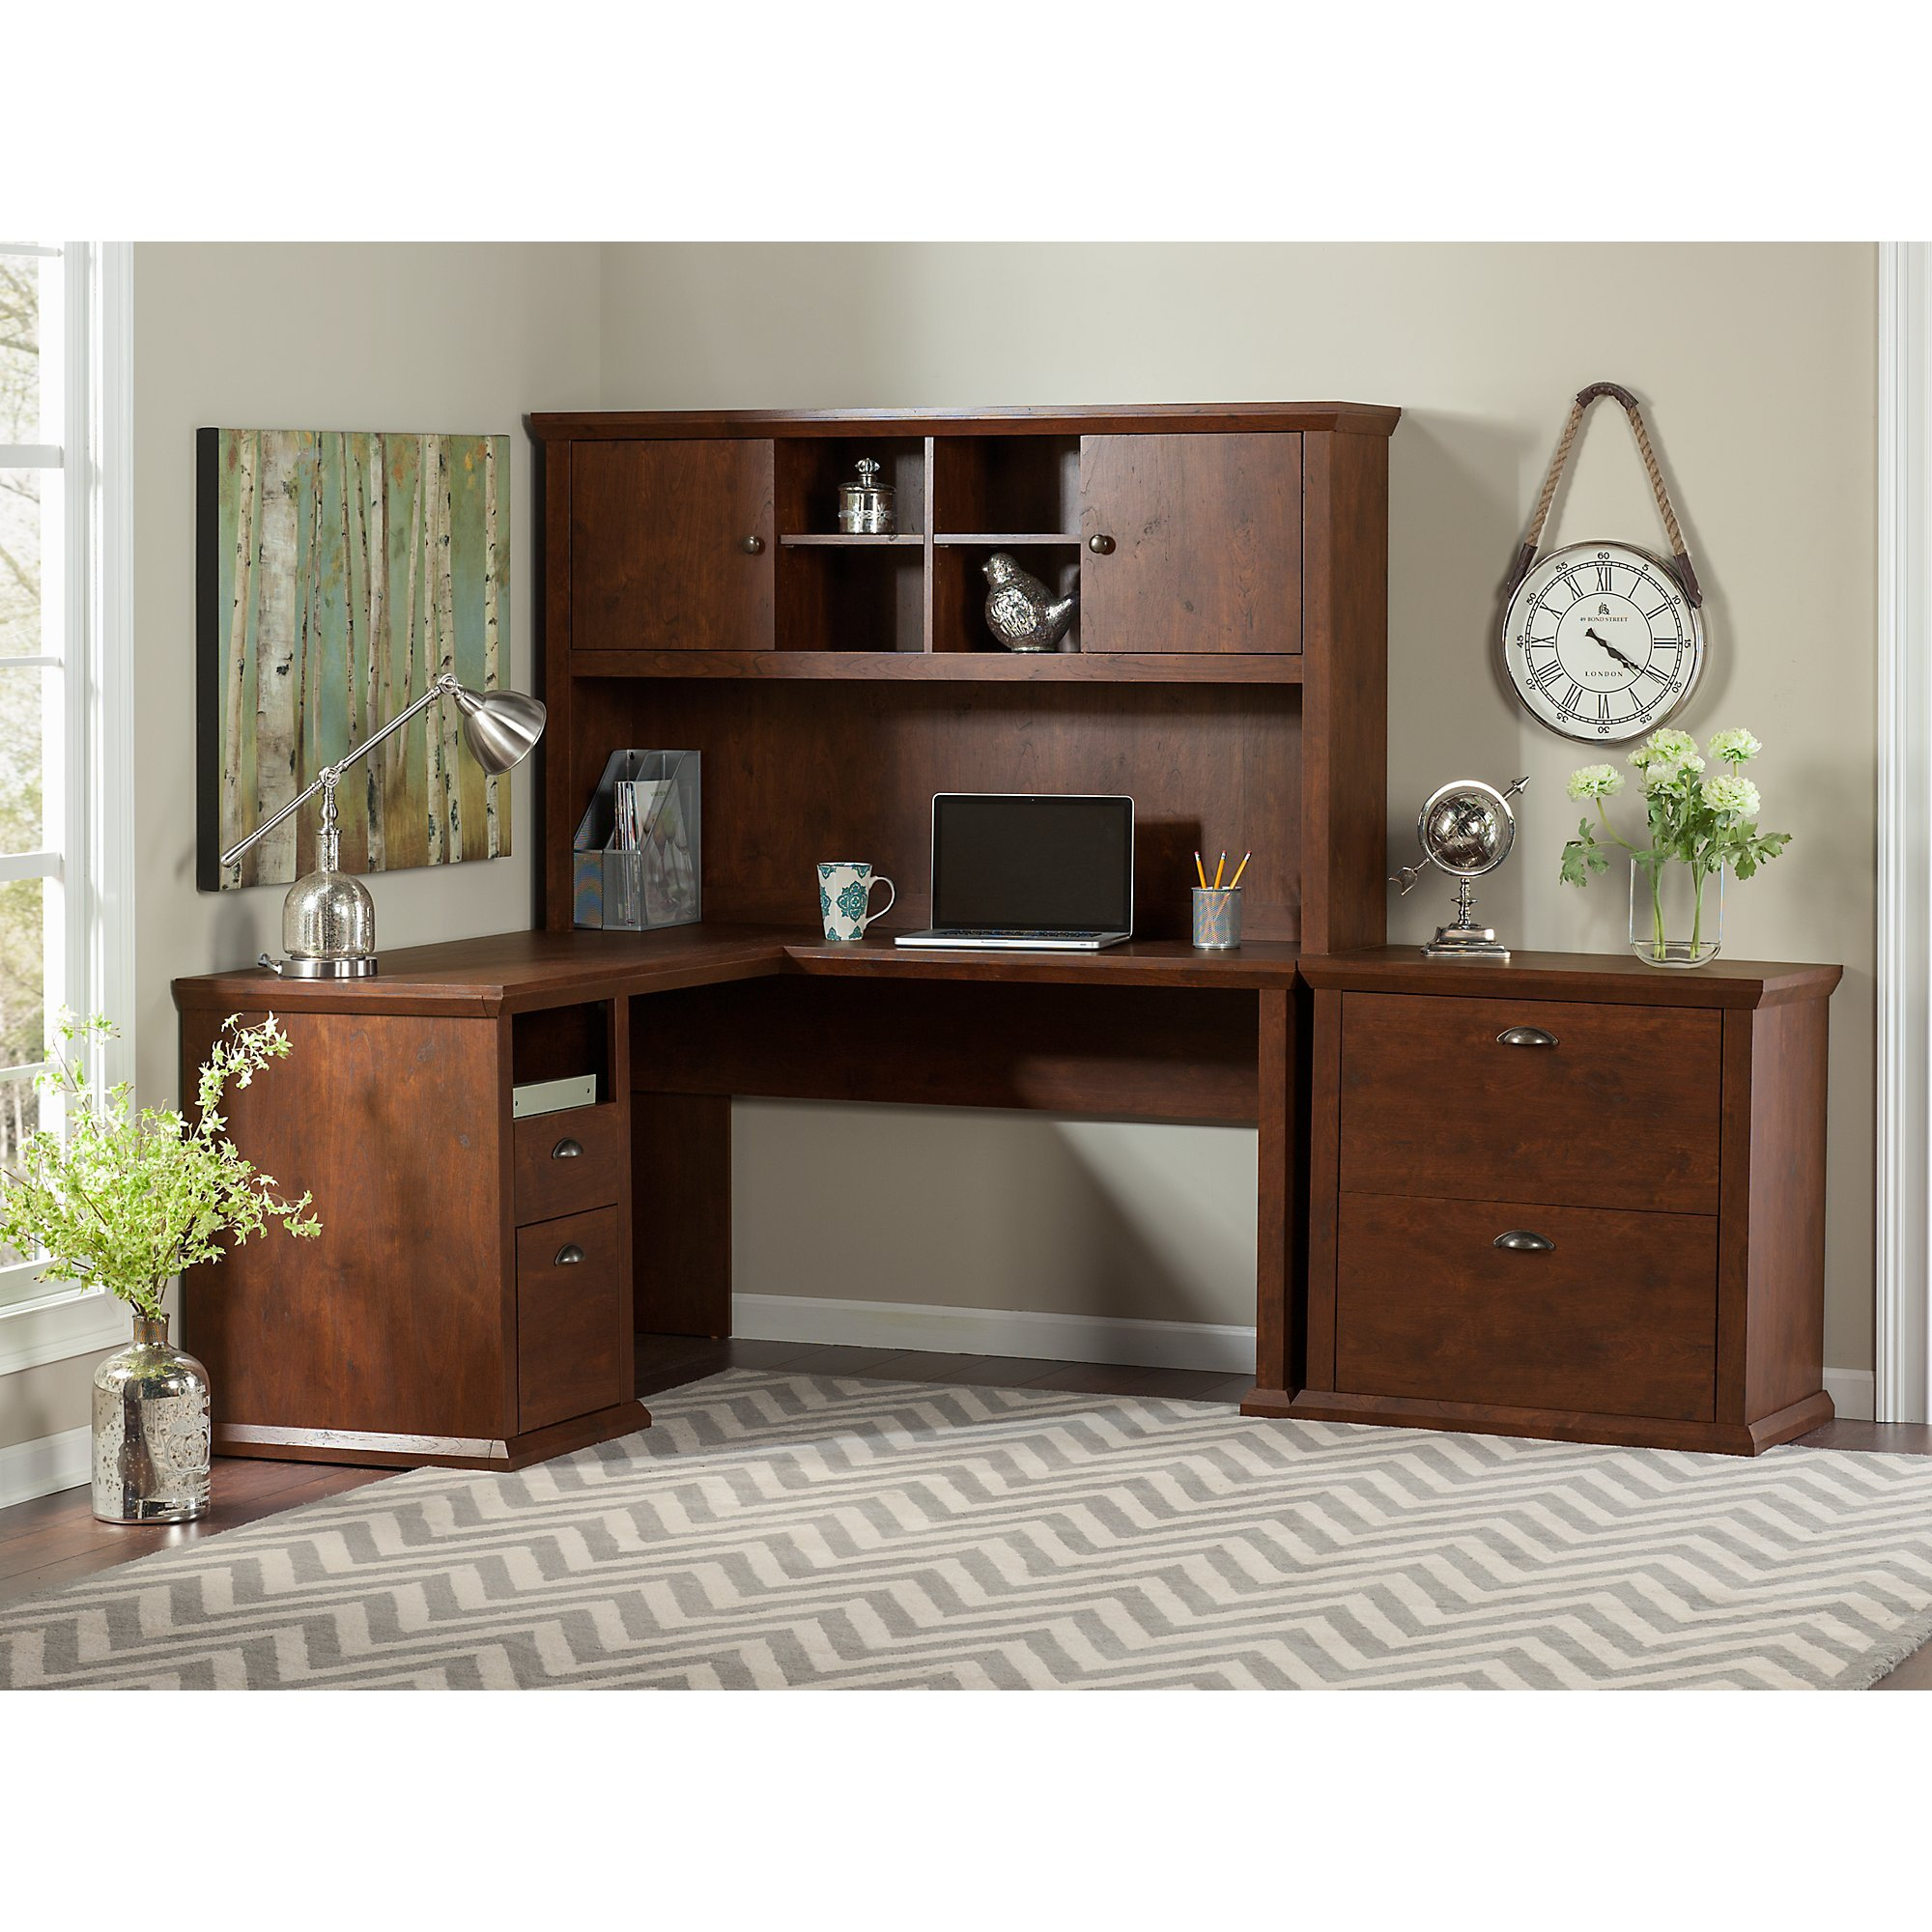 Yorktown L Shaped Desk with Hutch and Lateral File Cabinet